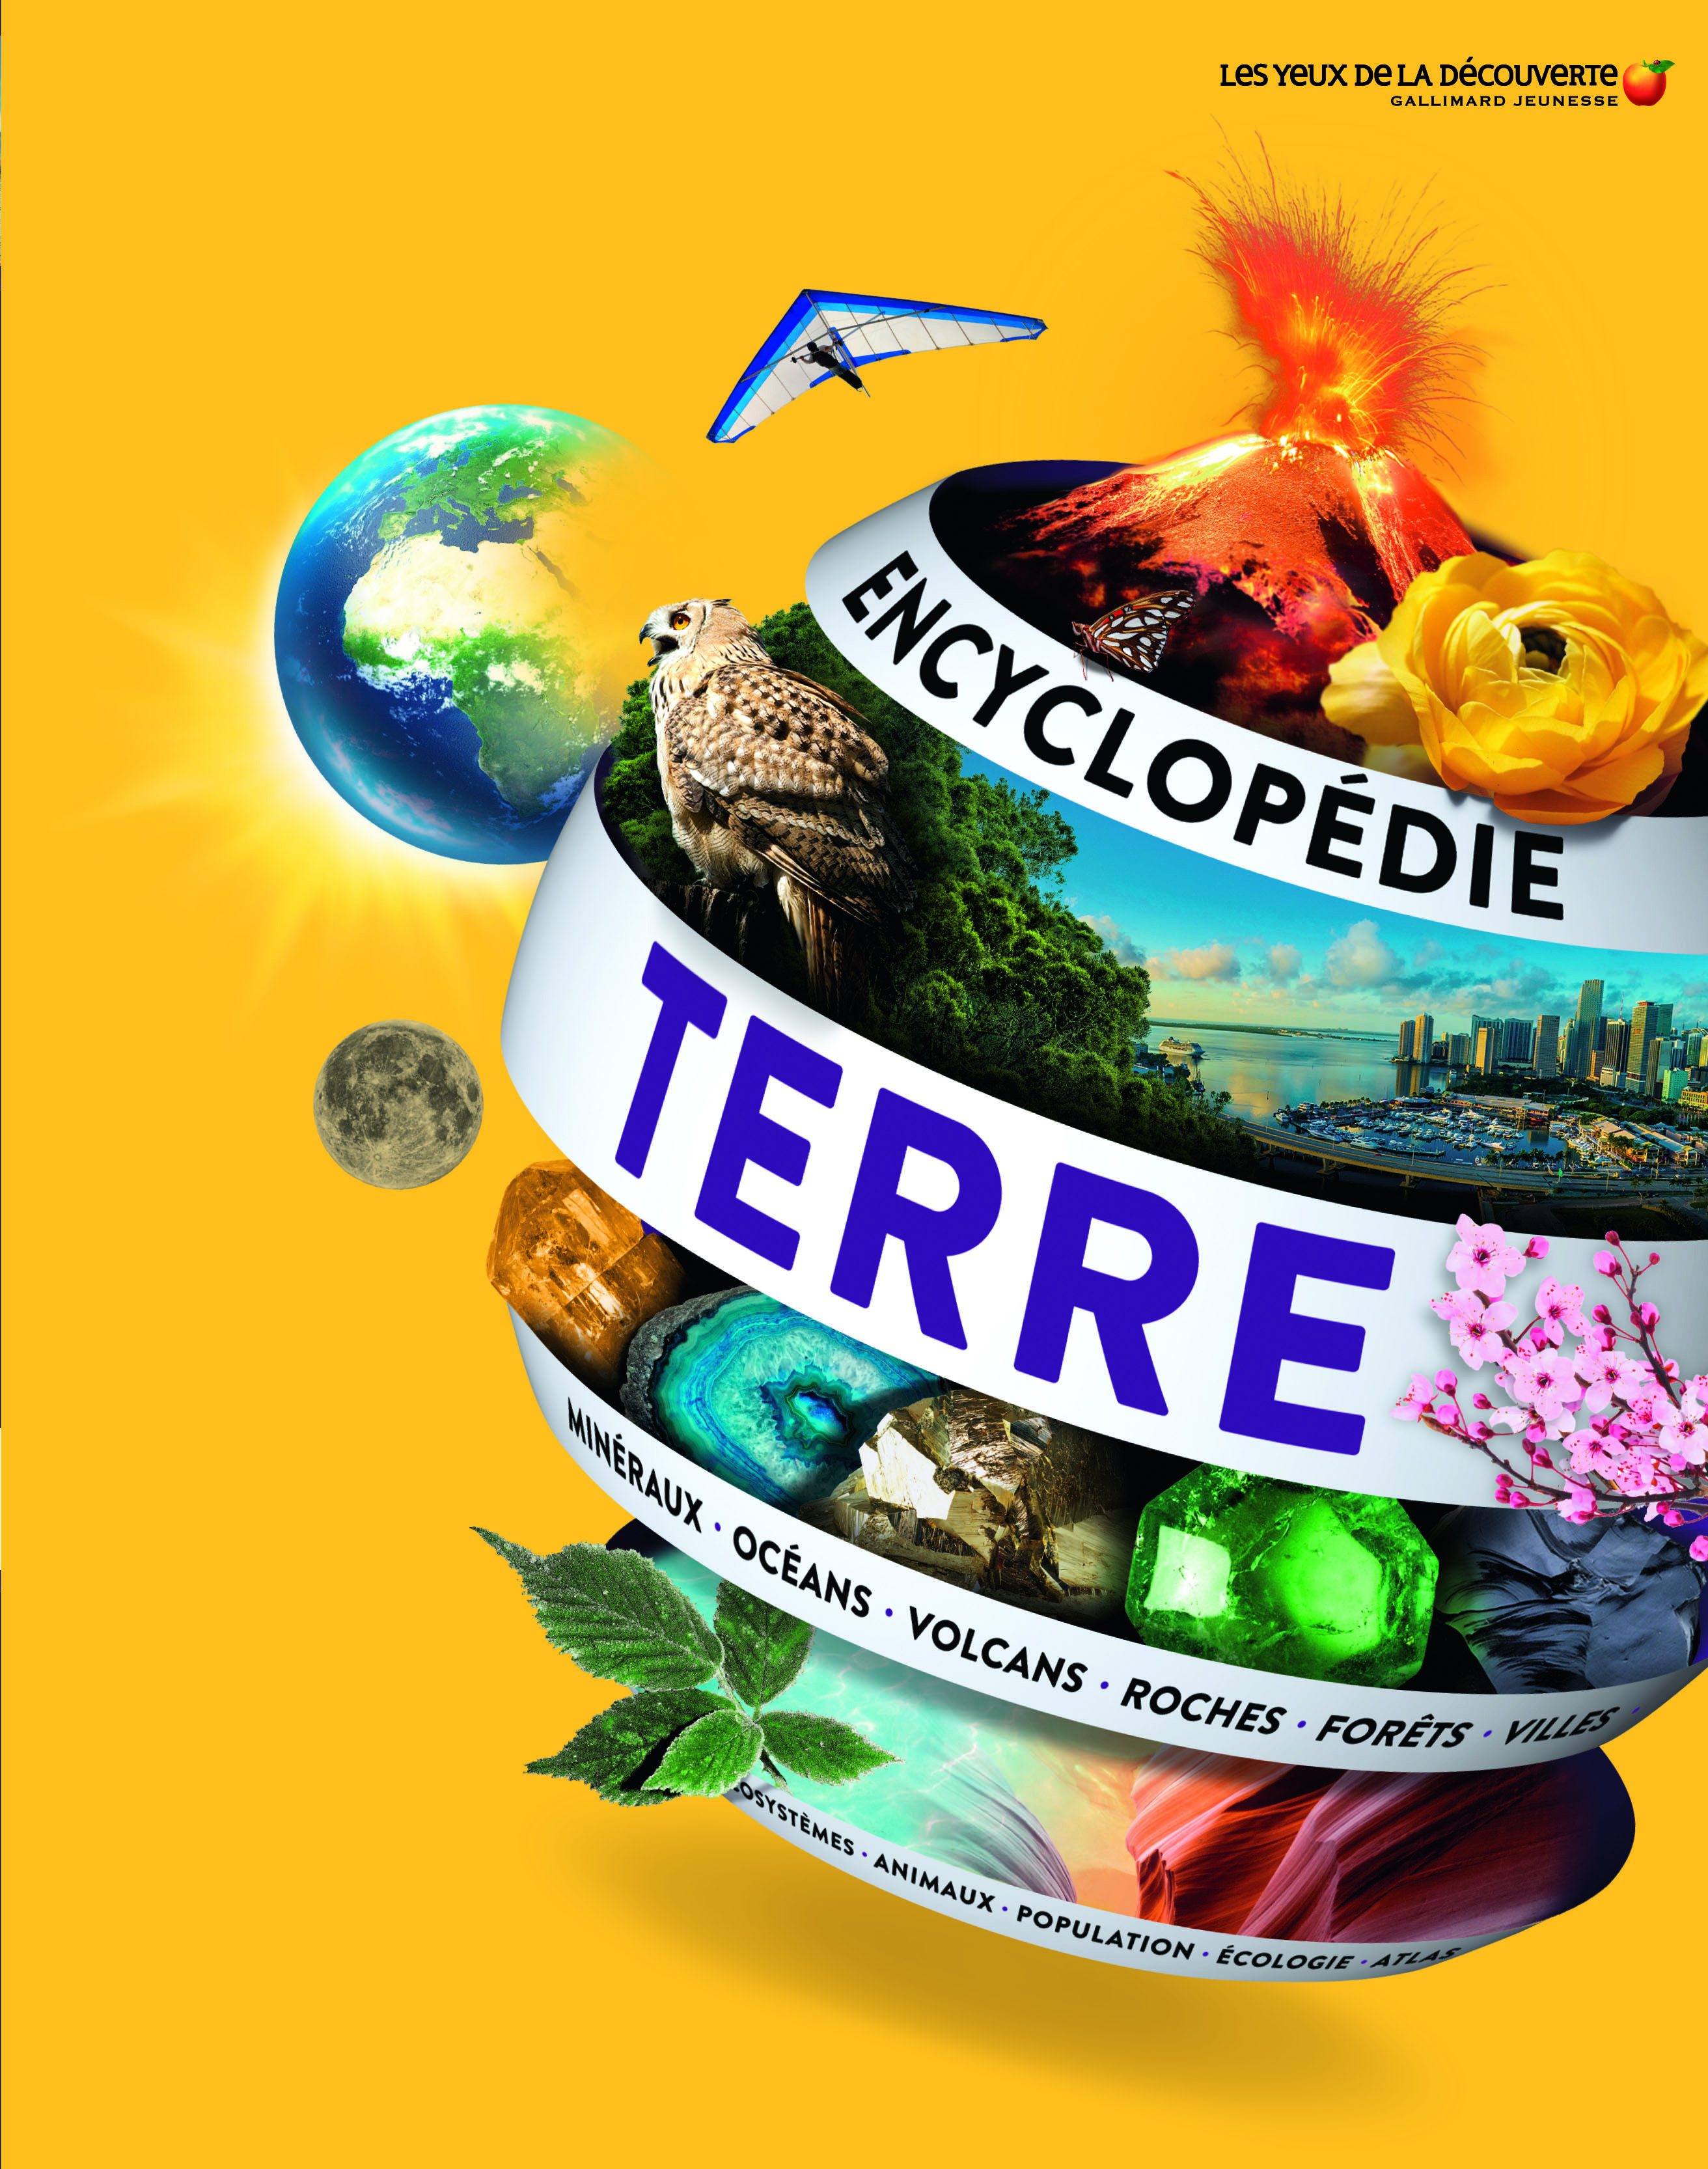 ENCYCLOPEDIE DE LA TERRE